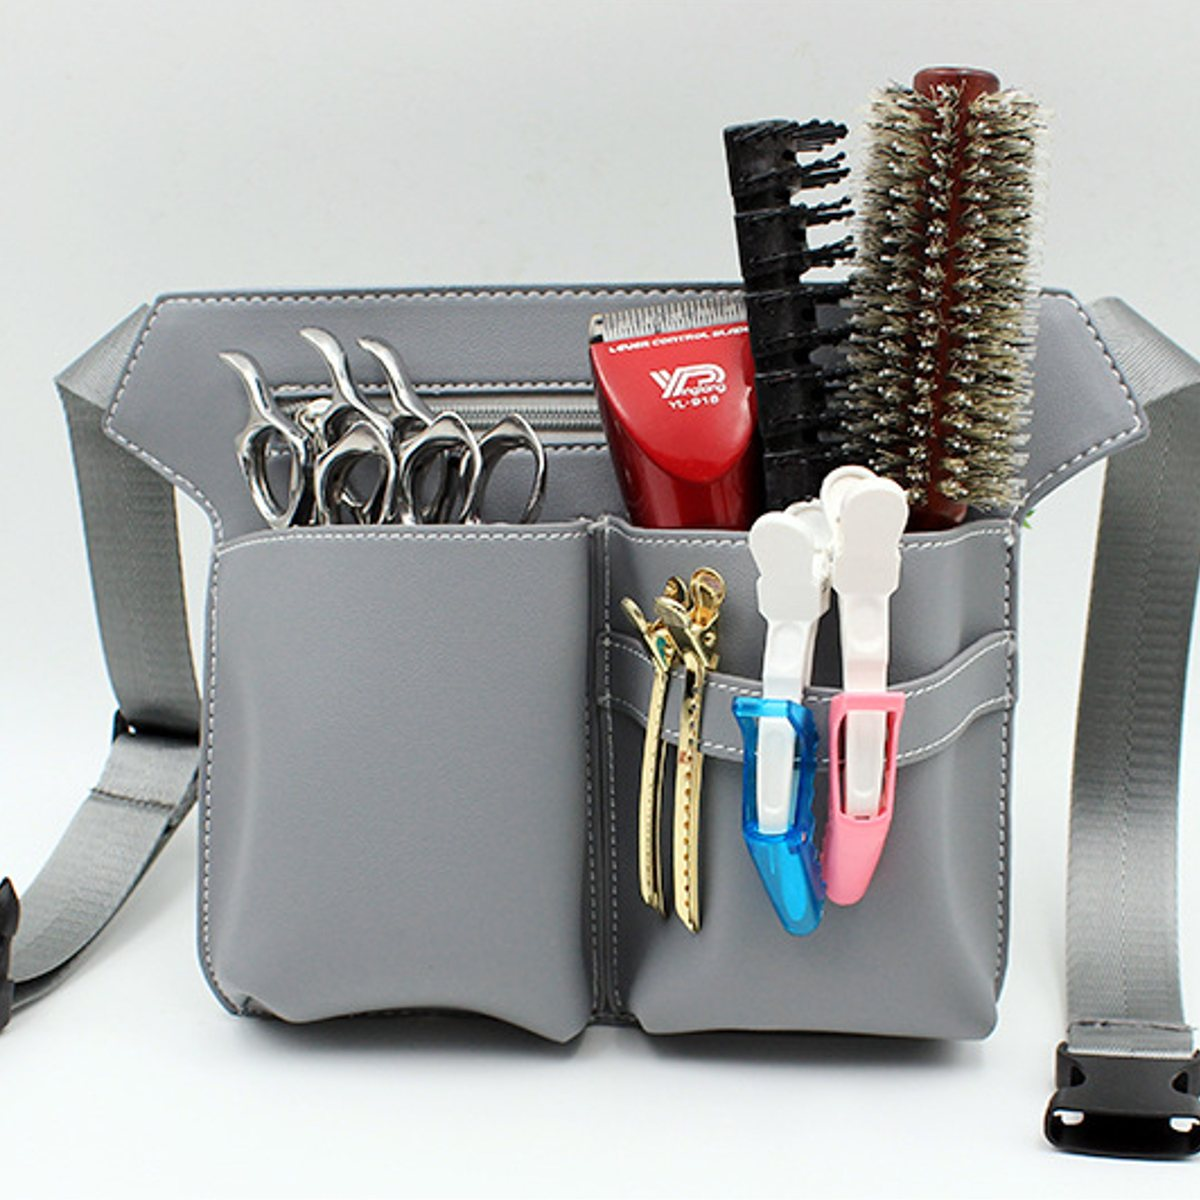 AEQUEEN Profession Salon Hair Scissor Bag Big Storage Space Hair Comb Shear Pouch Holder Case Belt Barber Hairdressing Tool Bag